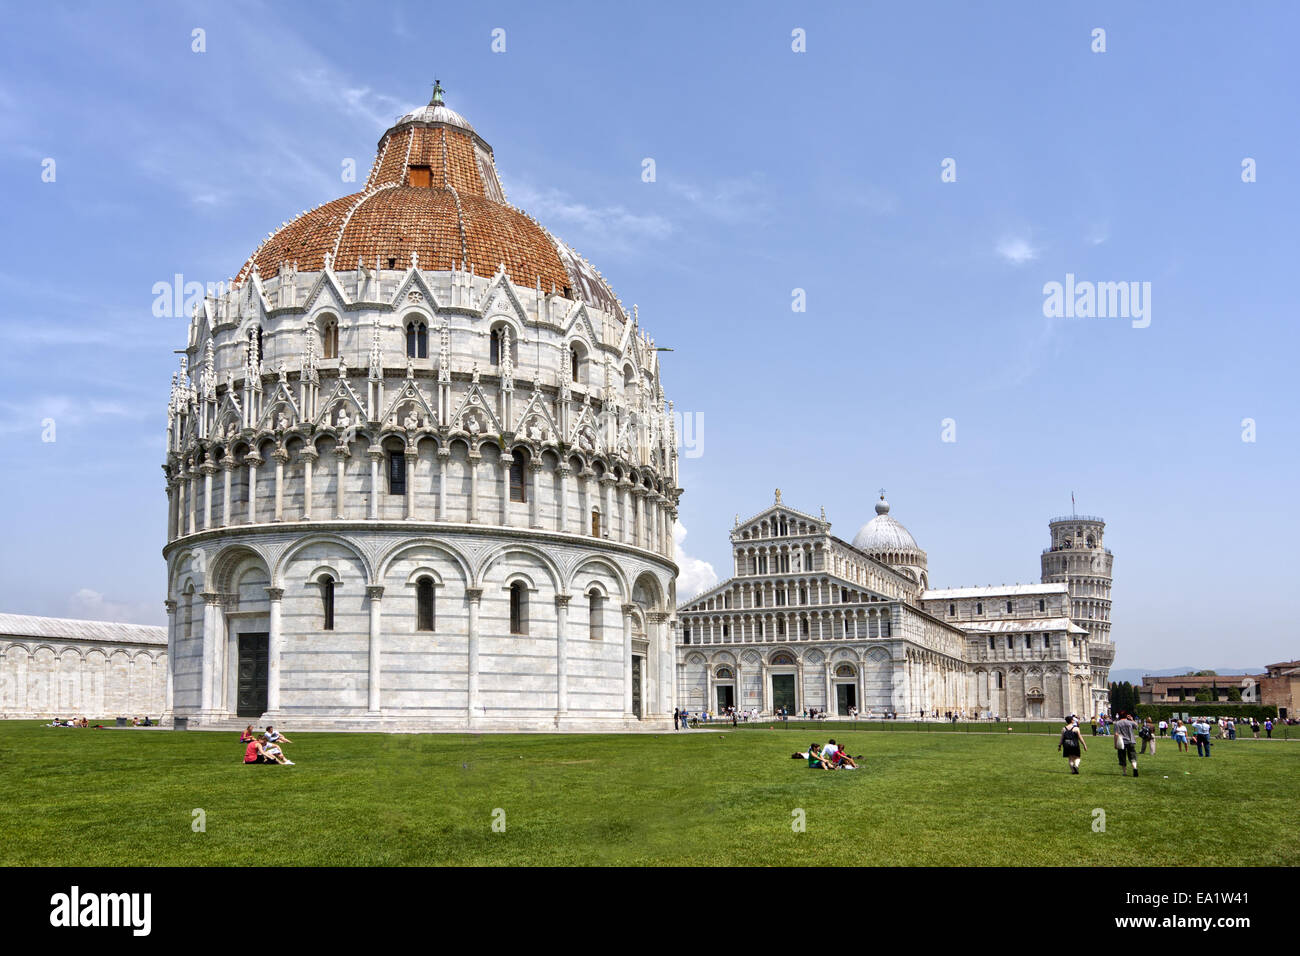 Square of Miracles in Pisa - Stock Image